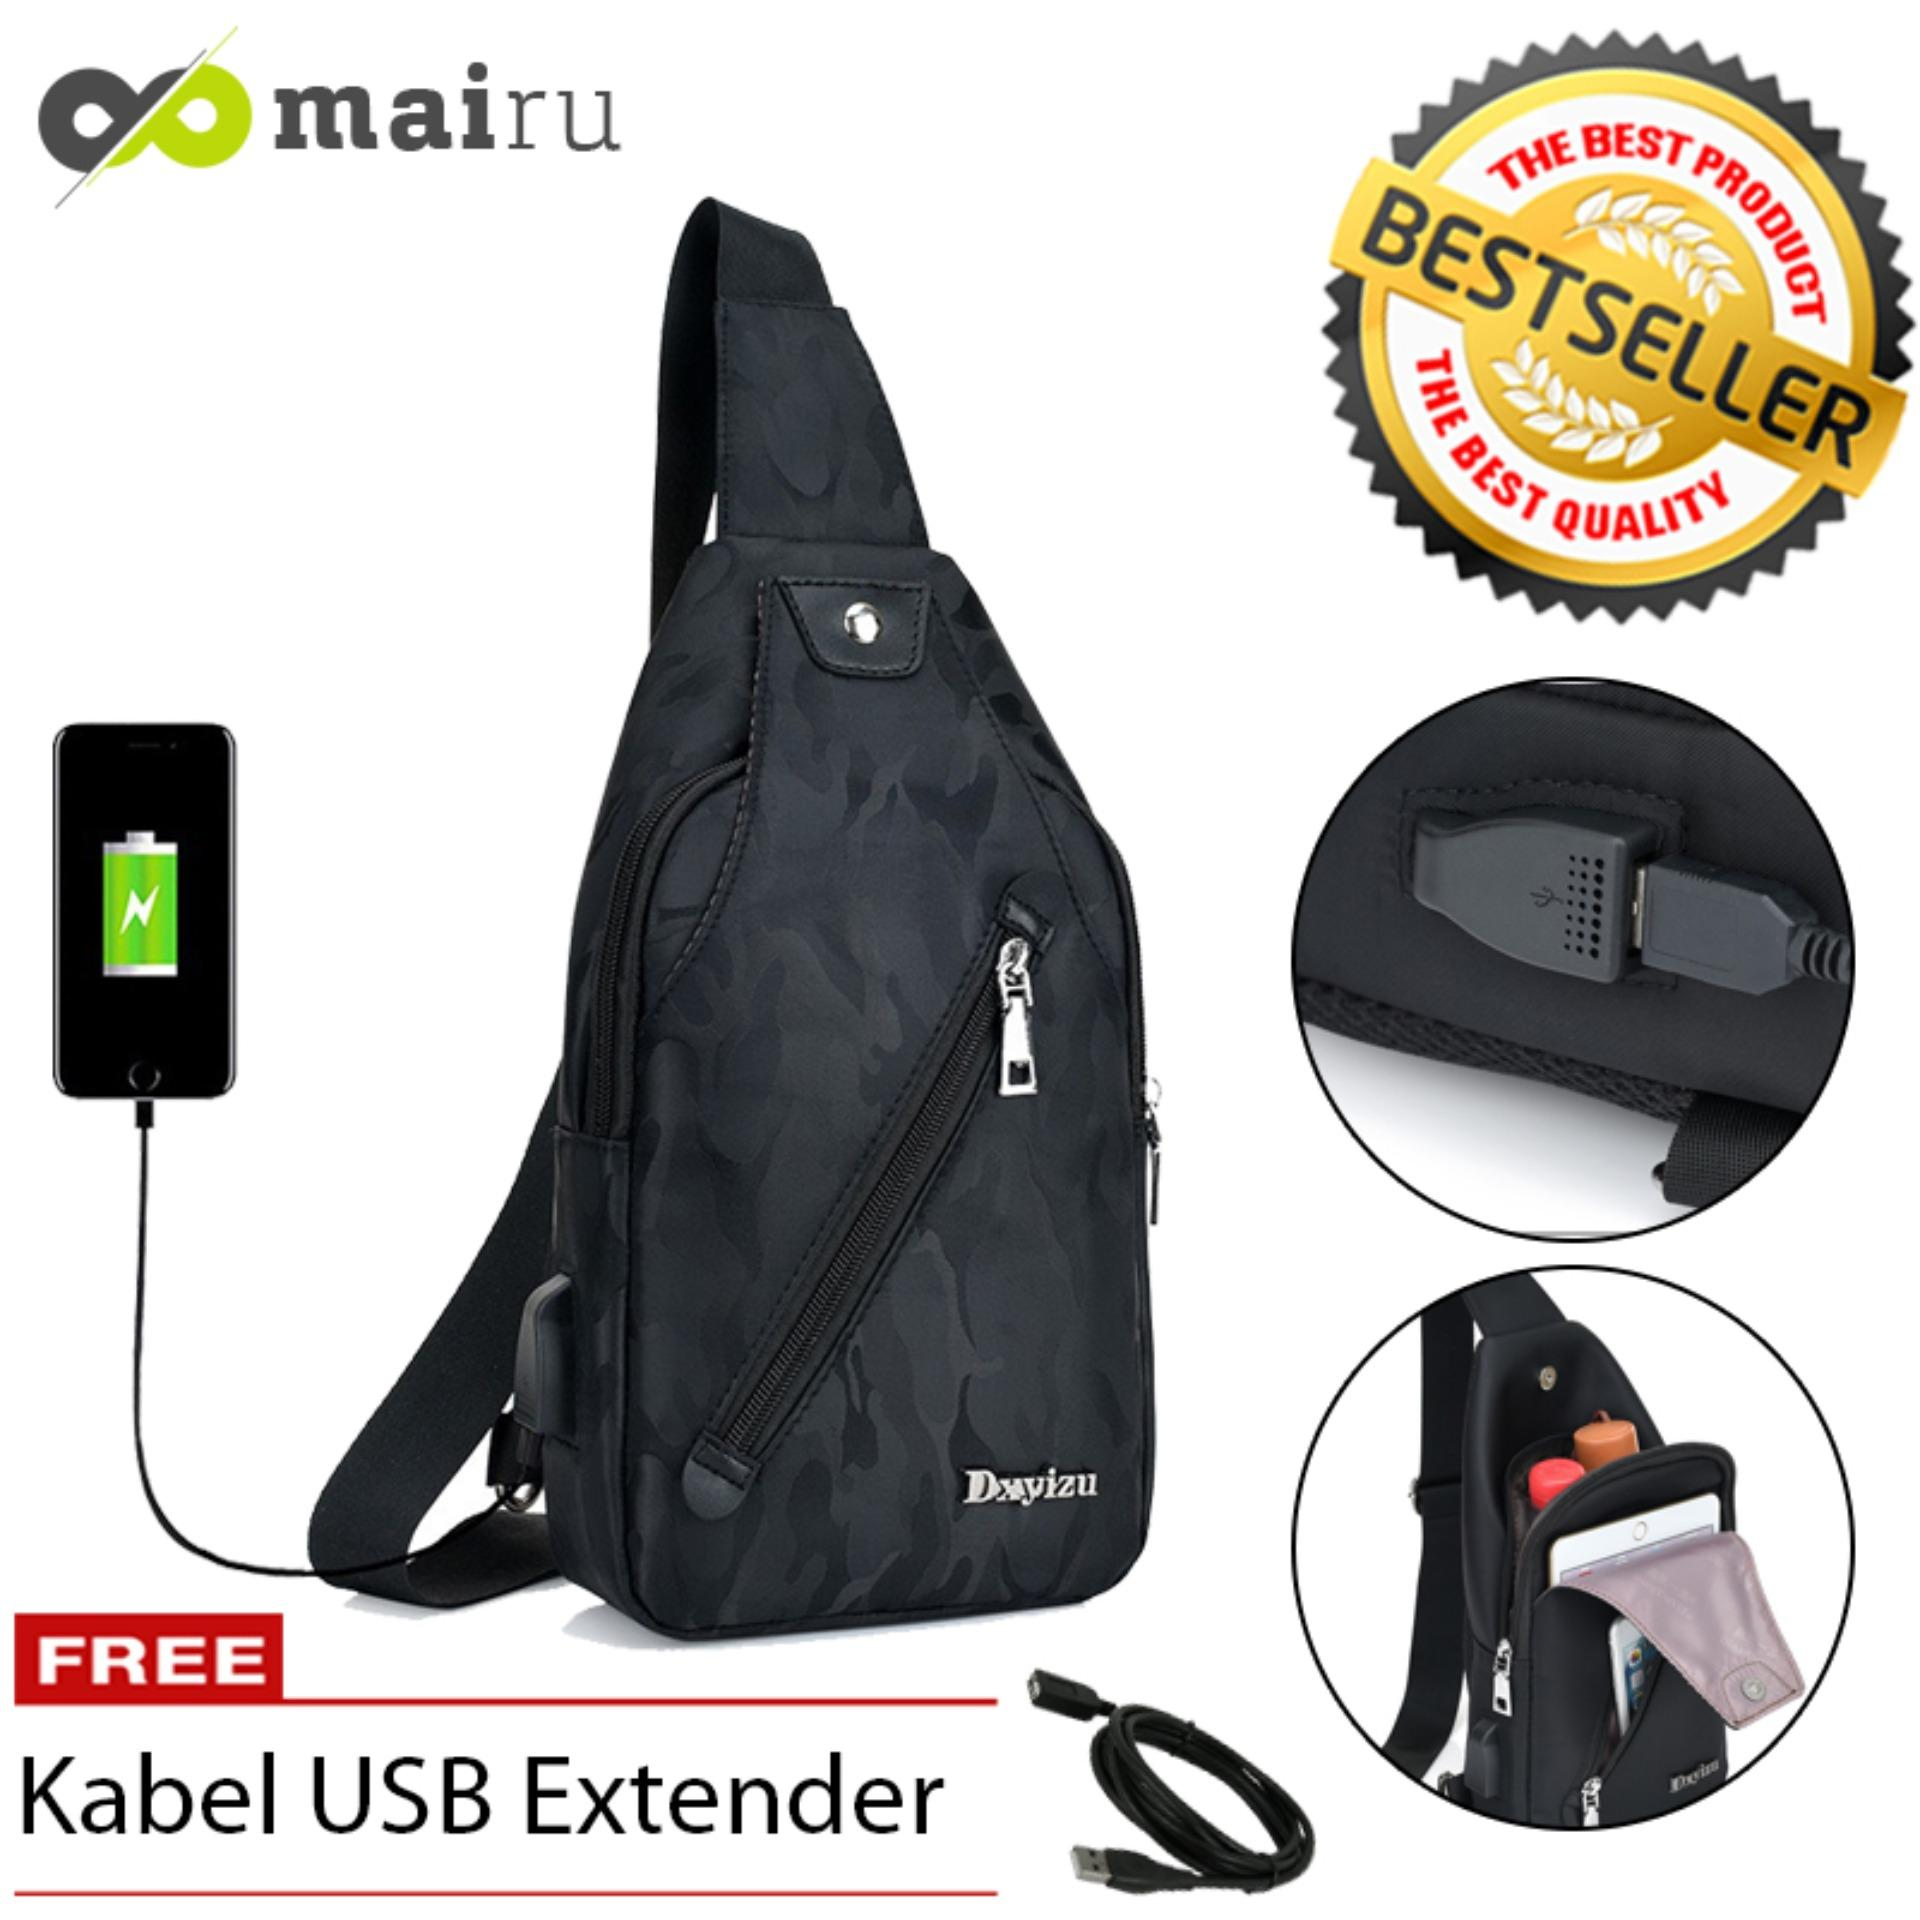 Ulasan Mairu Dxyizu 533 Tas Selempang Pria Sling Bag Cross Body With Usb Charger Support For Iphone Ipad Mini Xiaomi Samsung Tab Tablet 8 Anti Theft